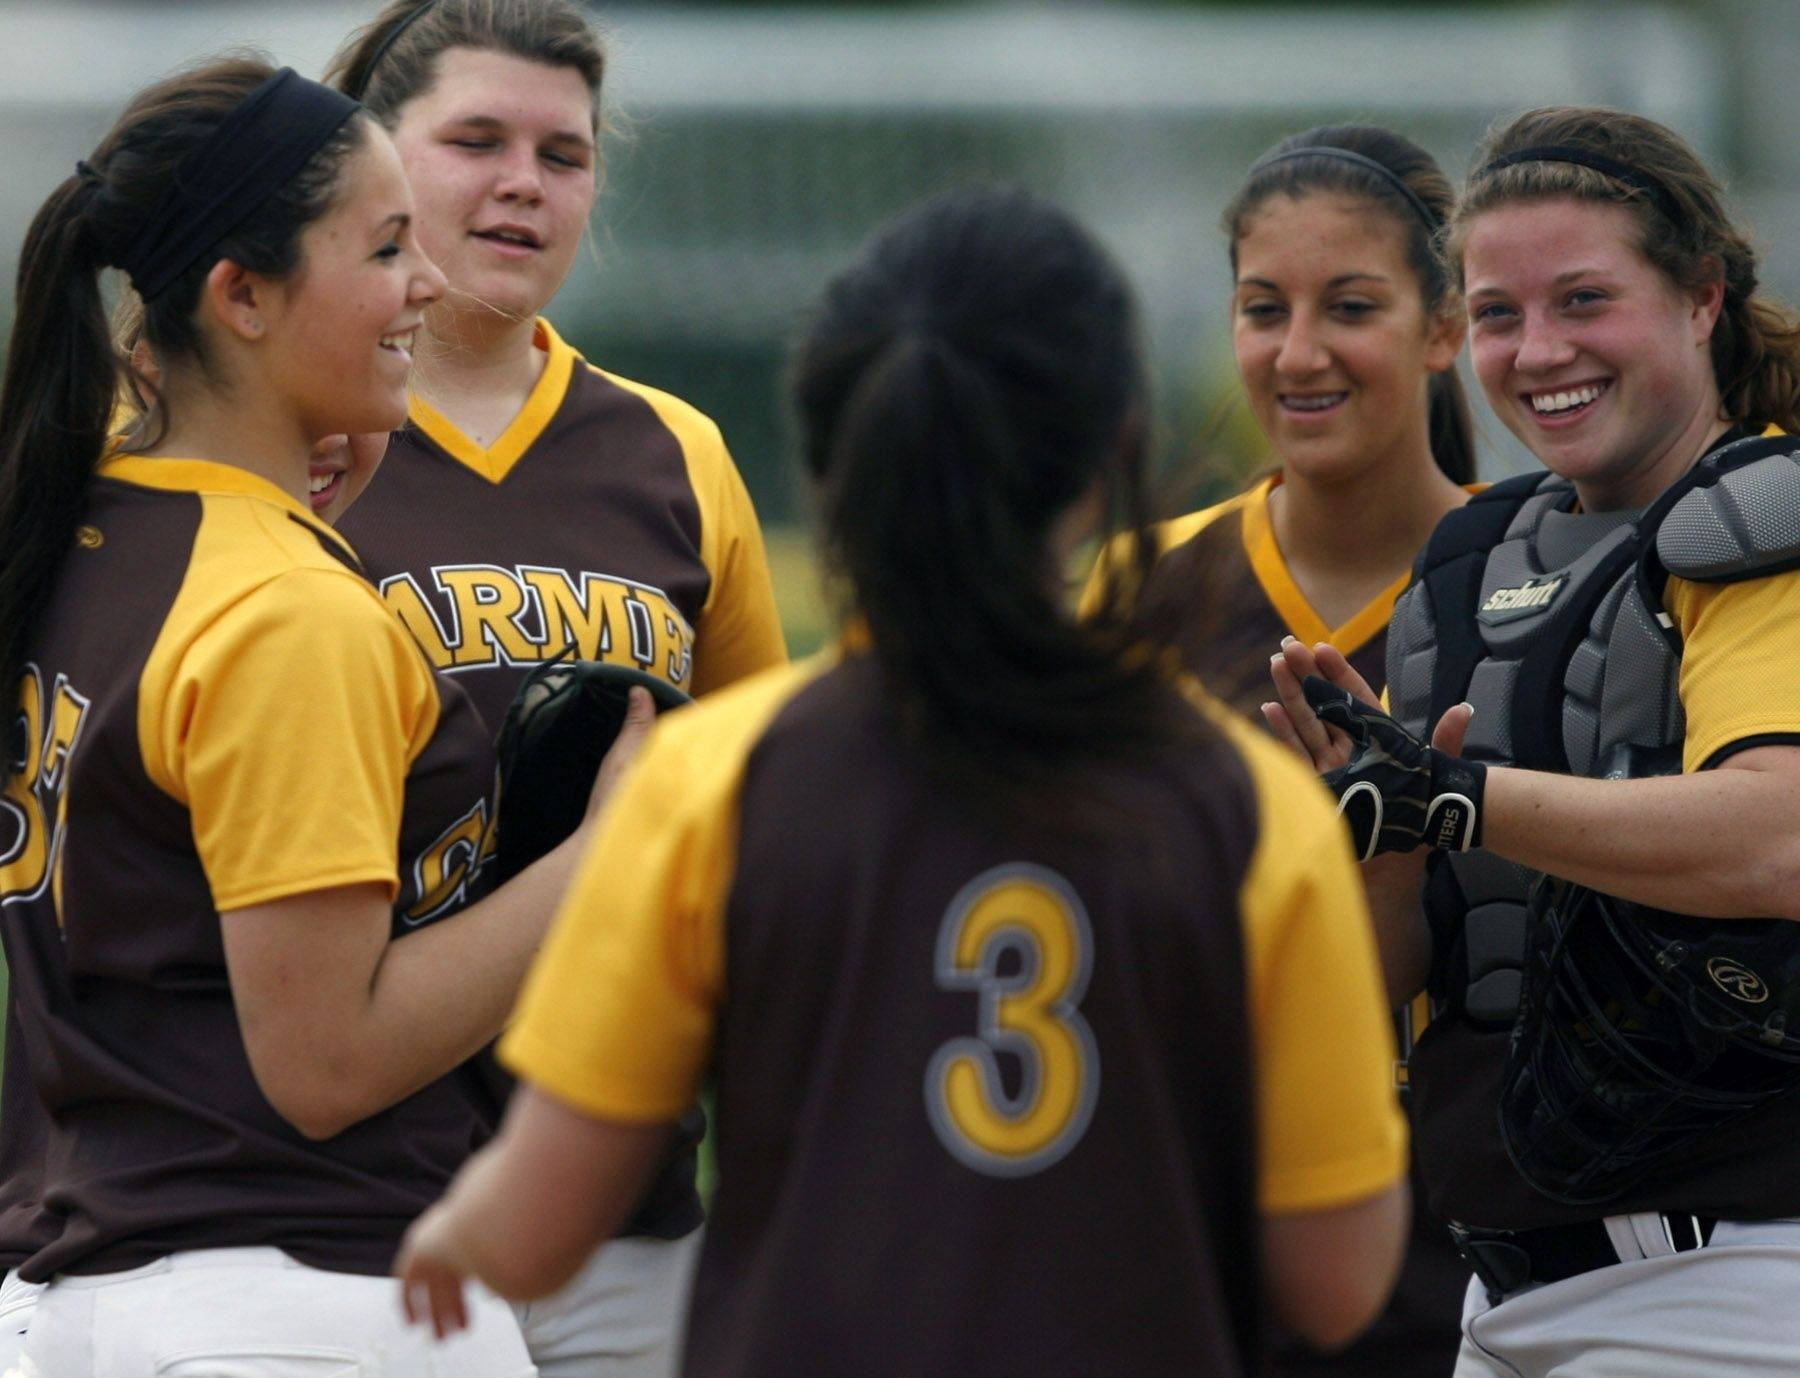 Carmel pitcher Rachel Tack (3) is greeted by teammates, from left, Danielle Pullano, Sally Snarski, Eden Warnke and Meg Grady, after returning to the field after a hand injury.